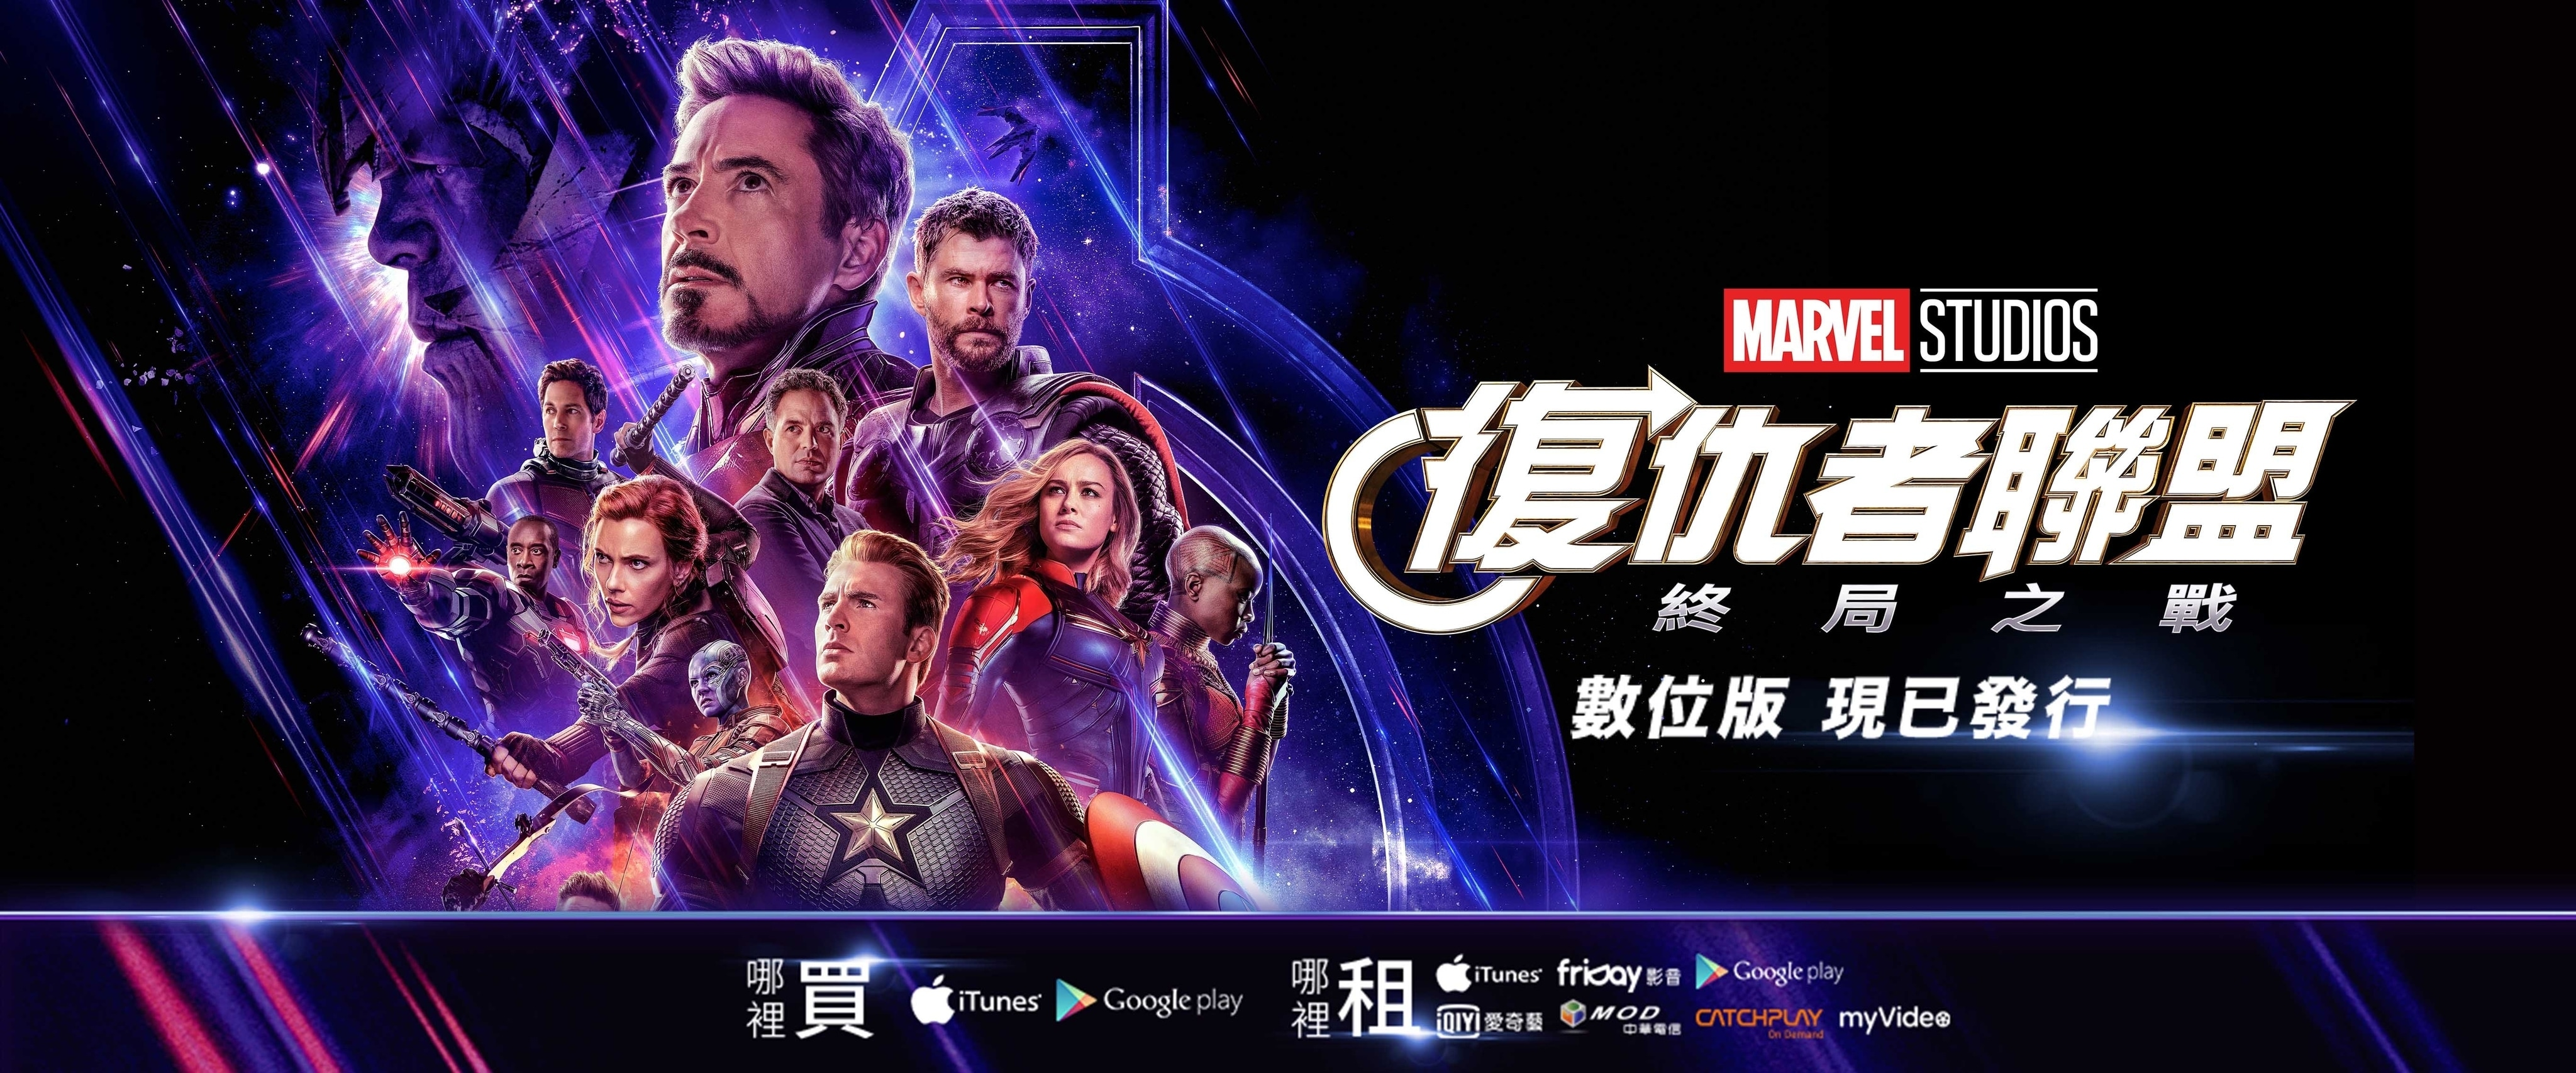 The Avengers 4 : End Game   Digital